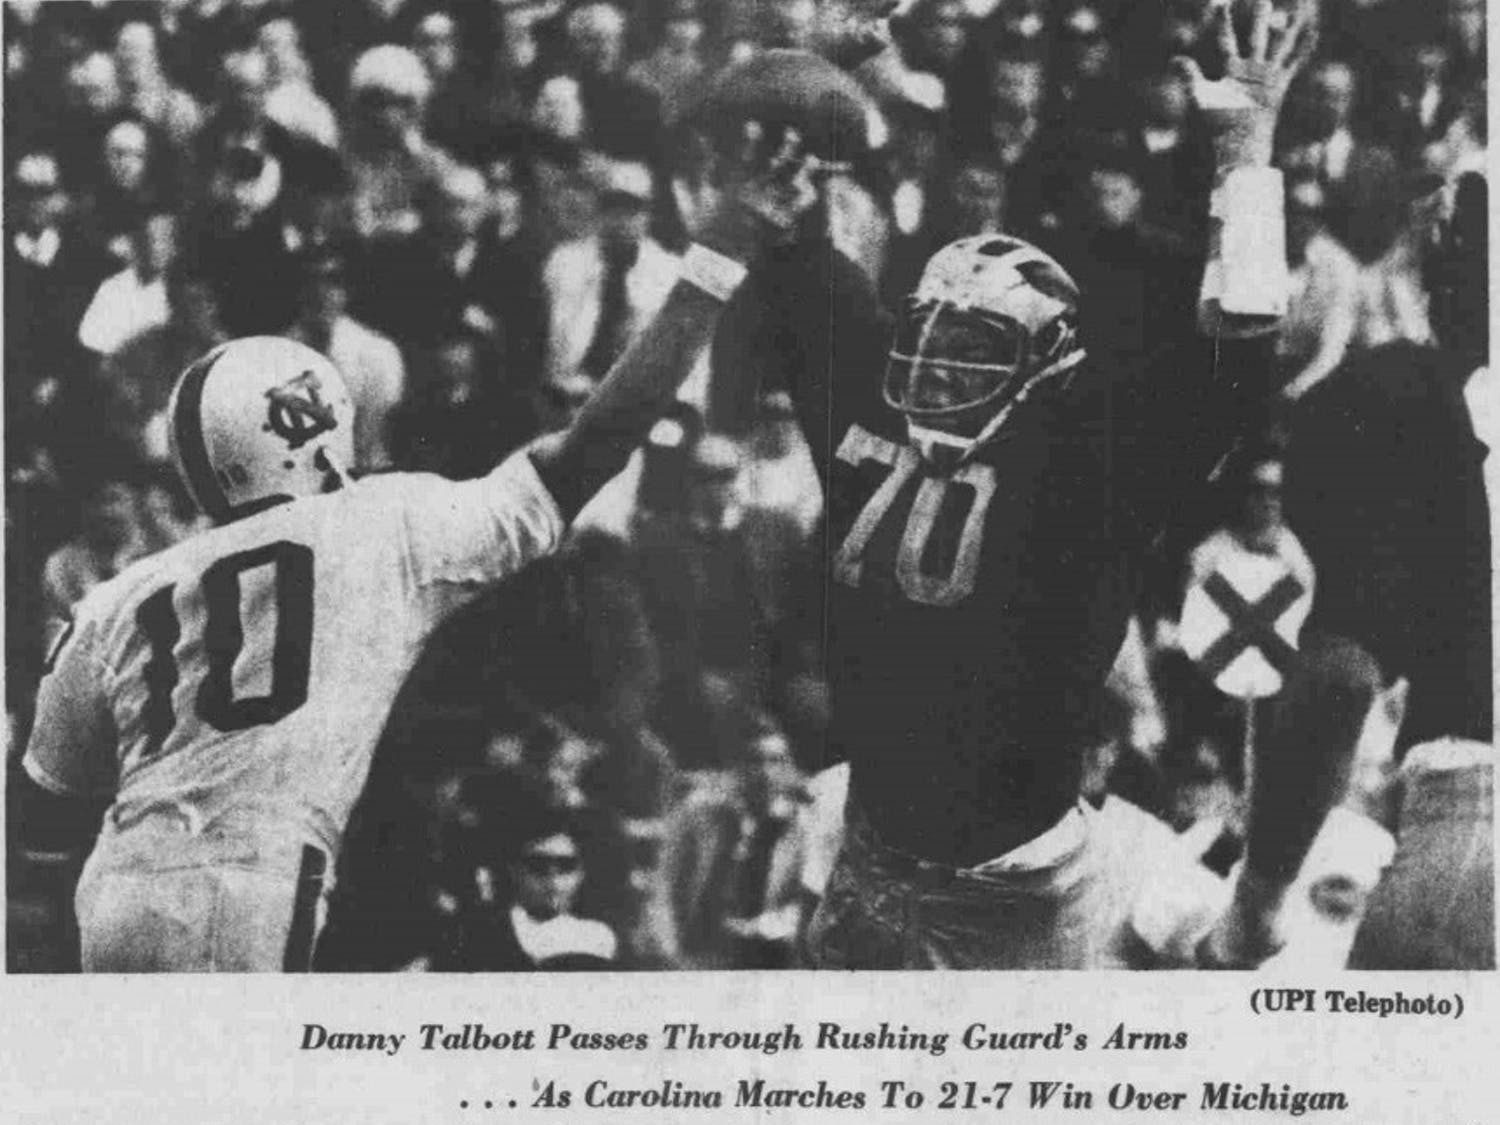 DTH File Photo. Danny Talbott played varsity baseball, helping them to the College World Series in 1966, and was on the freshman basketball team.  He won ACC Player of the Year in 1965 as a quarterback for the Tar Heels. He was inducted into the North Carolina Sports Hall of Fame in 2003, and his No. 10 football jersey hangs in Kenan Stadium.